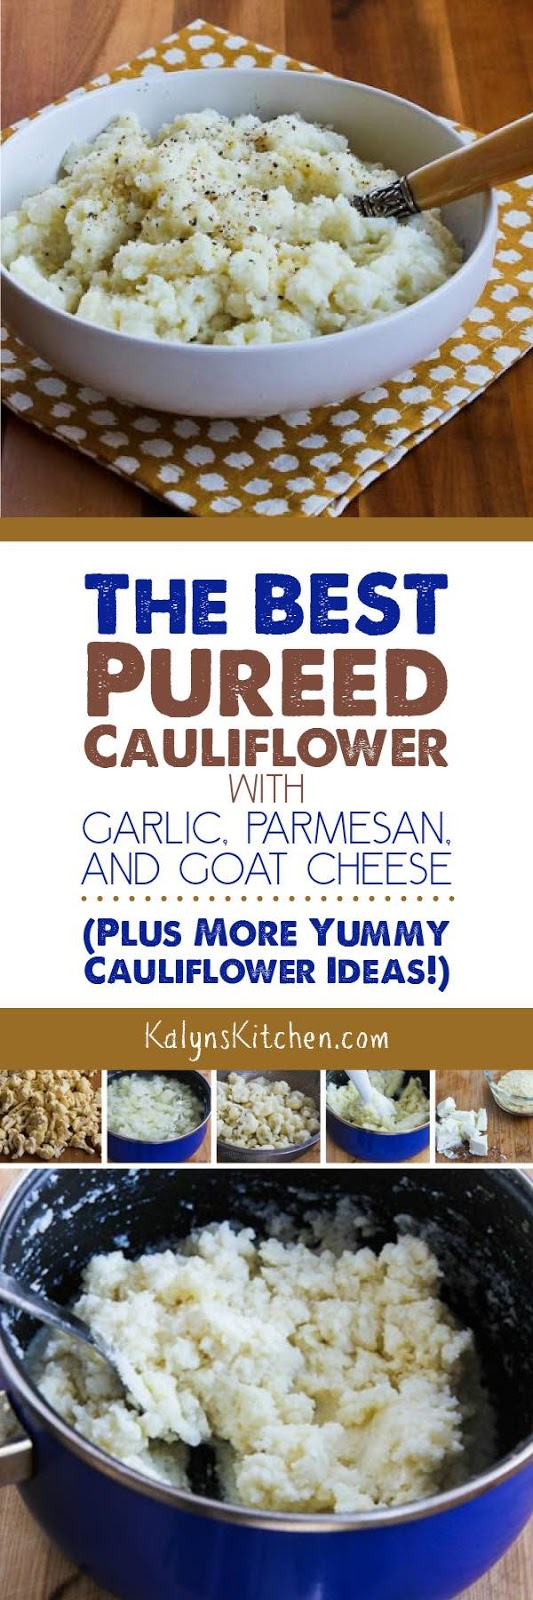 The Best Pureed Cauliflower with Garlic, Parmesan, and Goat Cheese ...